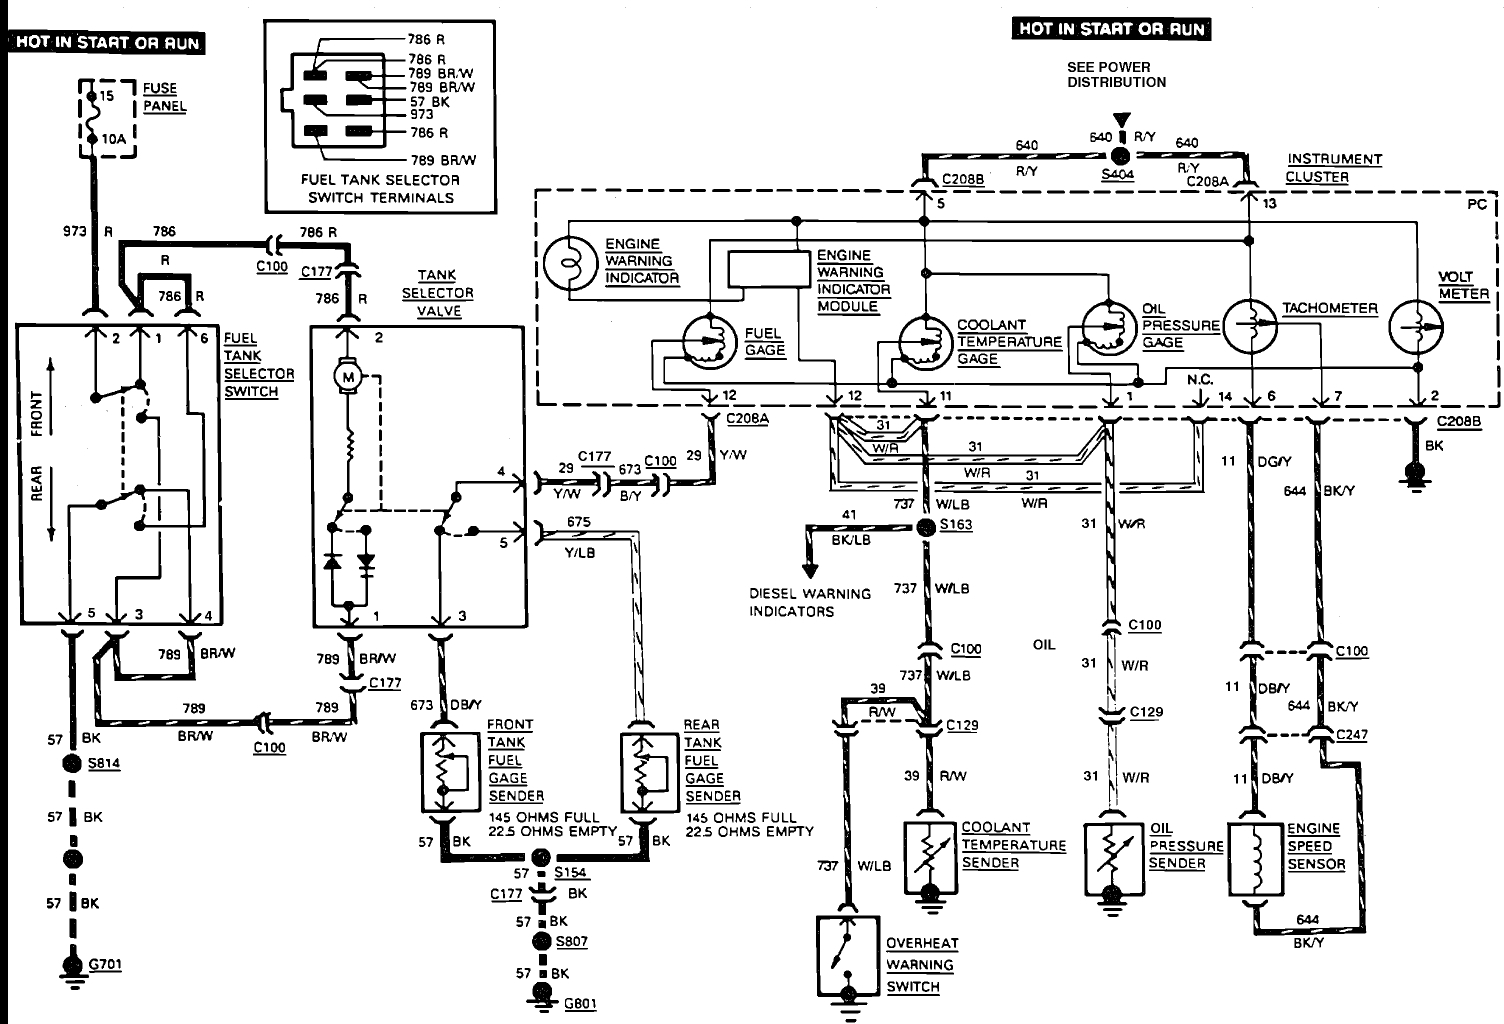 hight resolution of 1989 ford f 350 fuse diagram wiring diagram used1986 ford f 350 wiring diagram wiring diagram